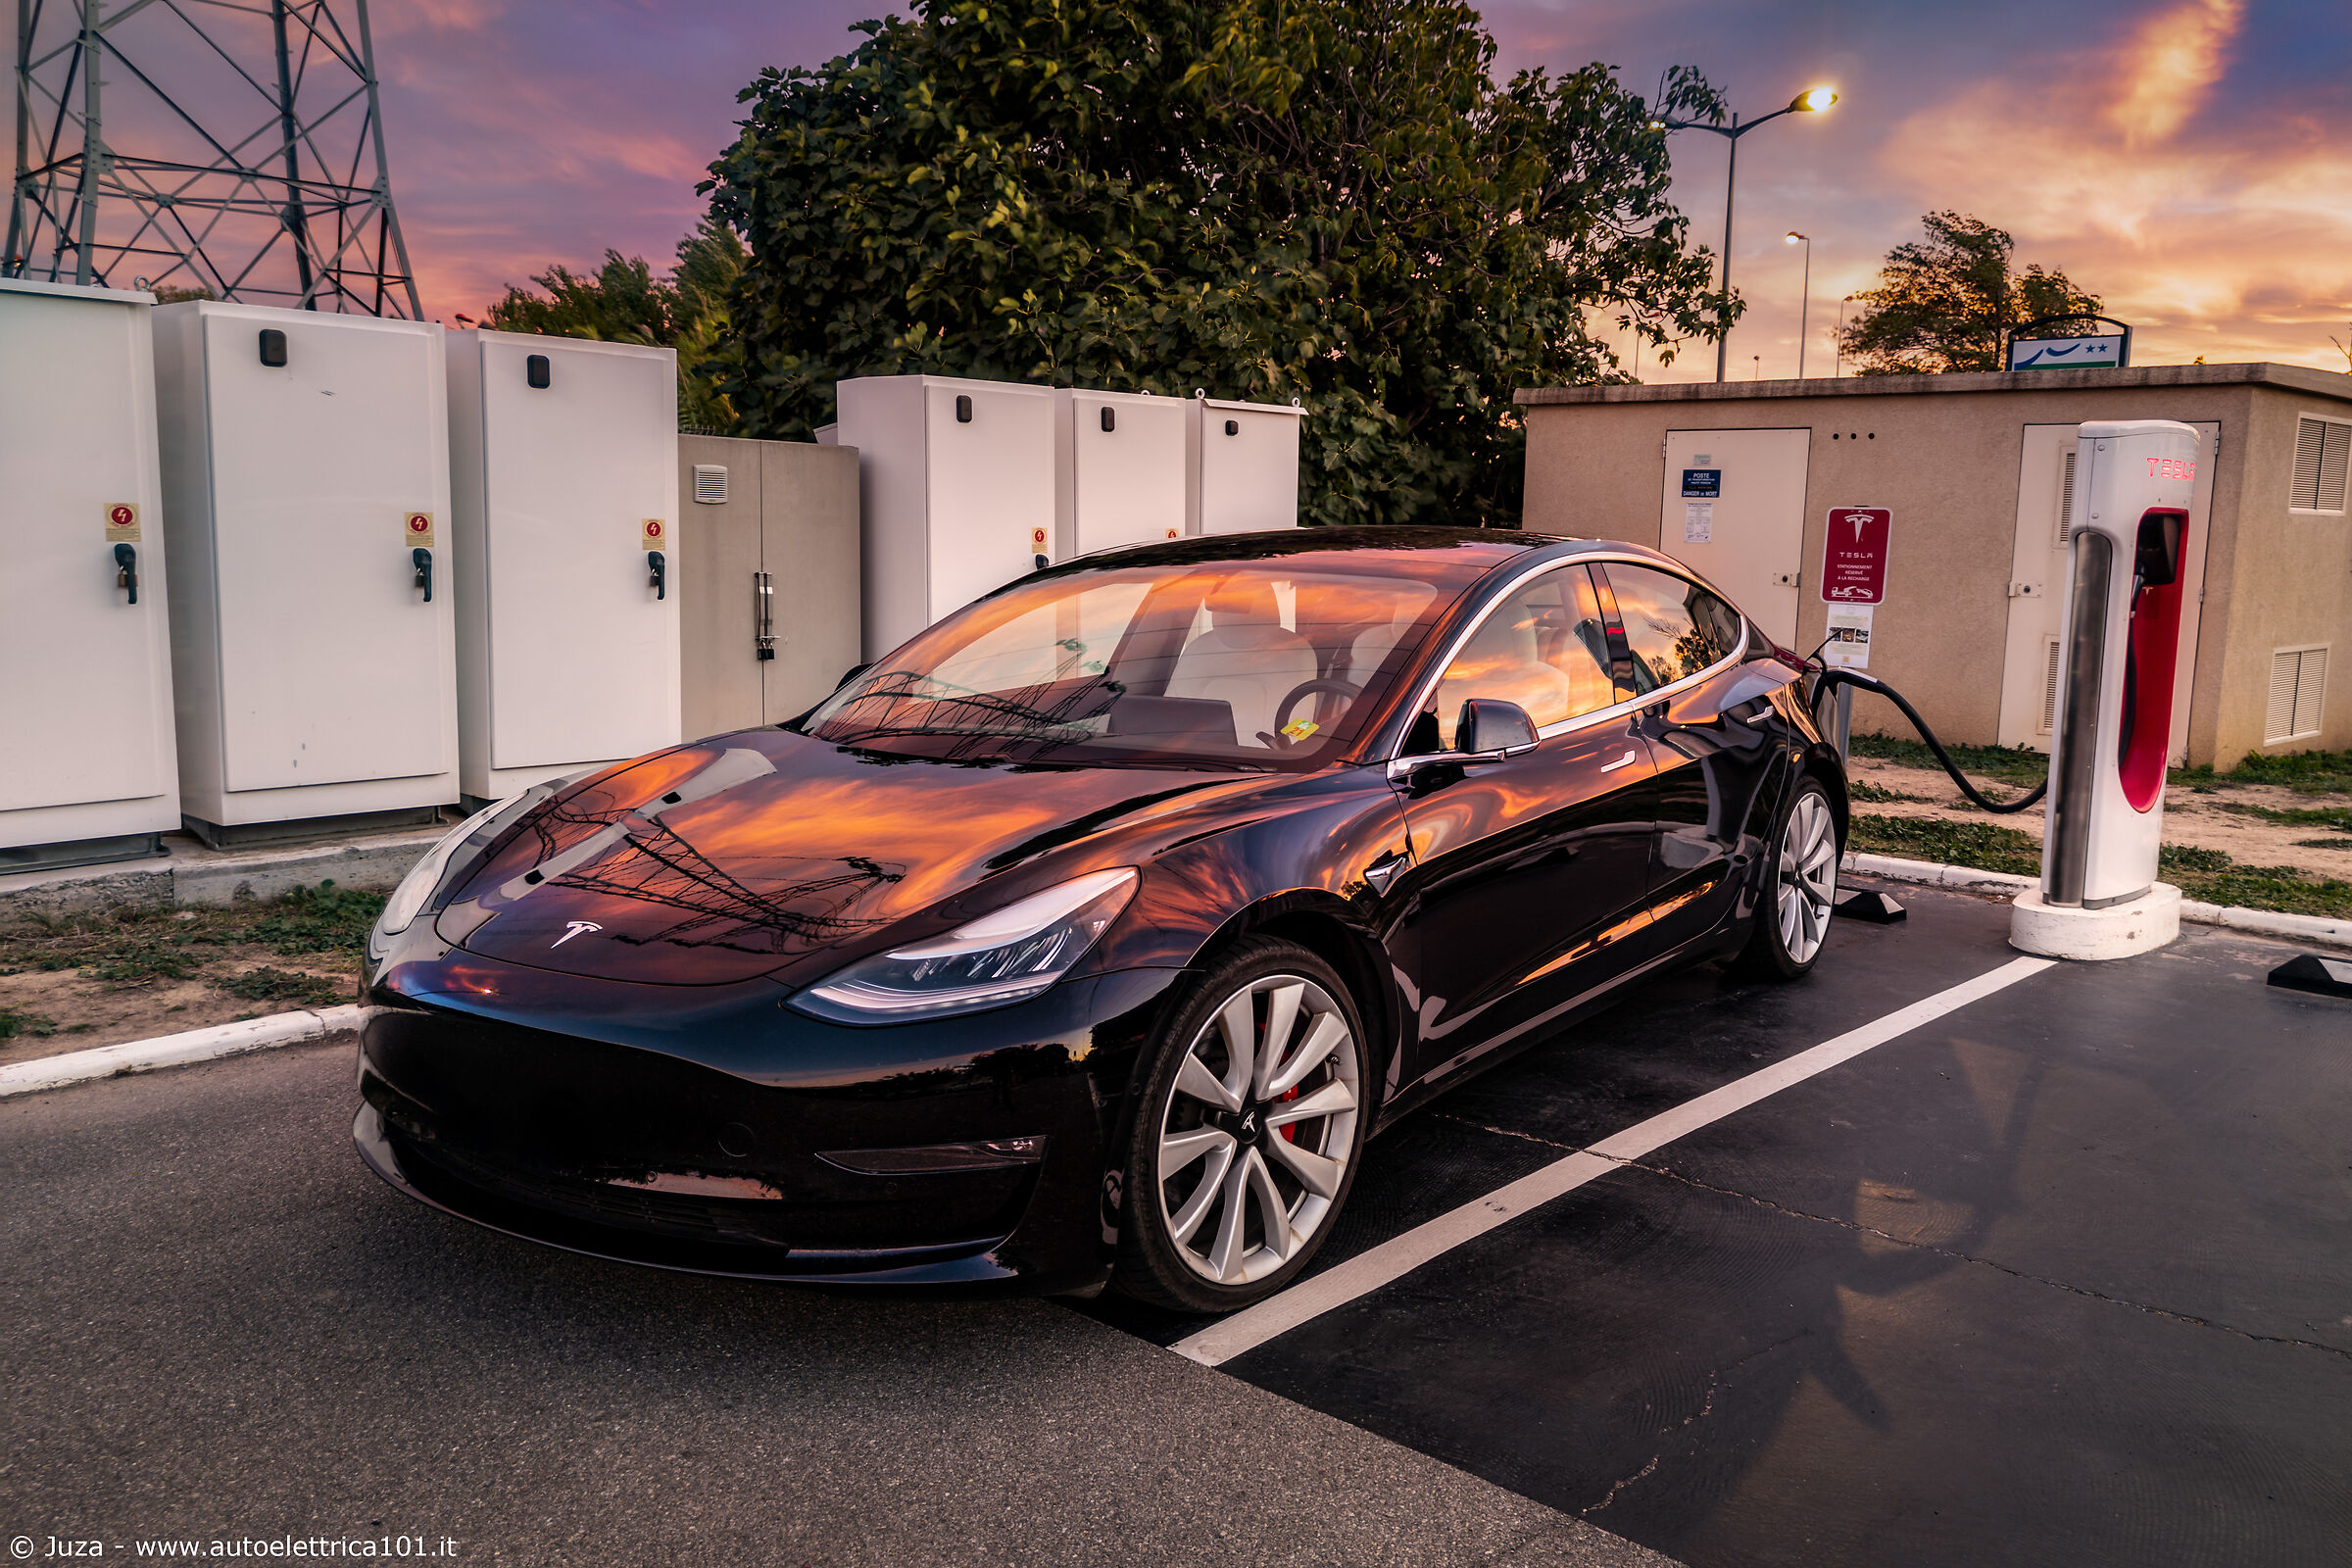 The Tesla dresses in the colors of the sunset...